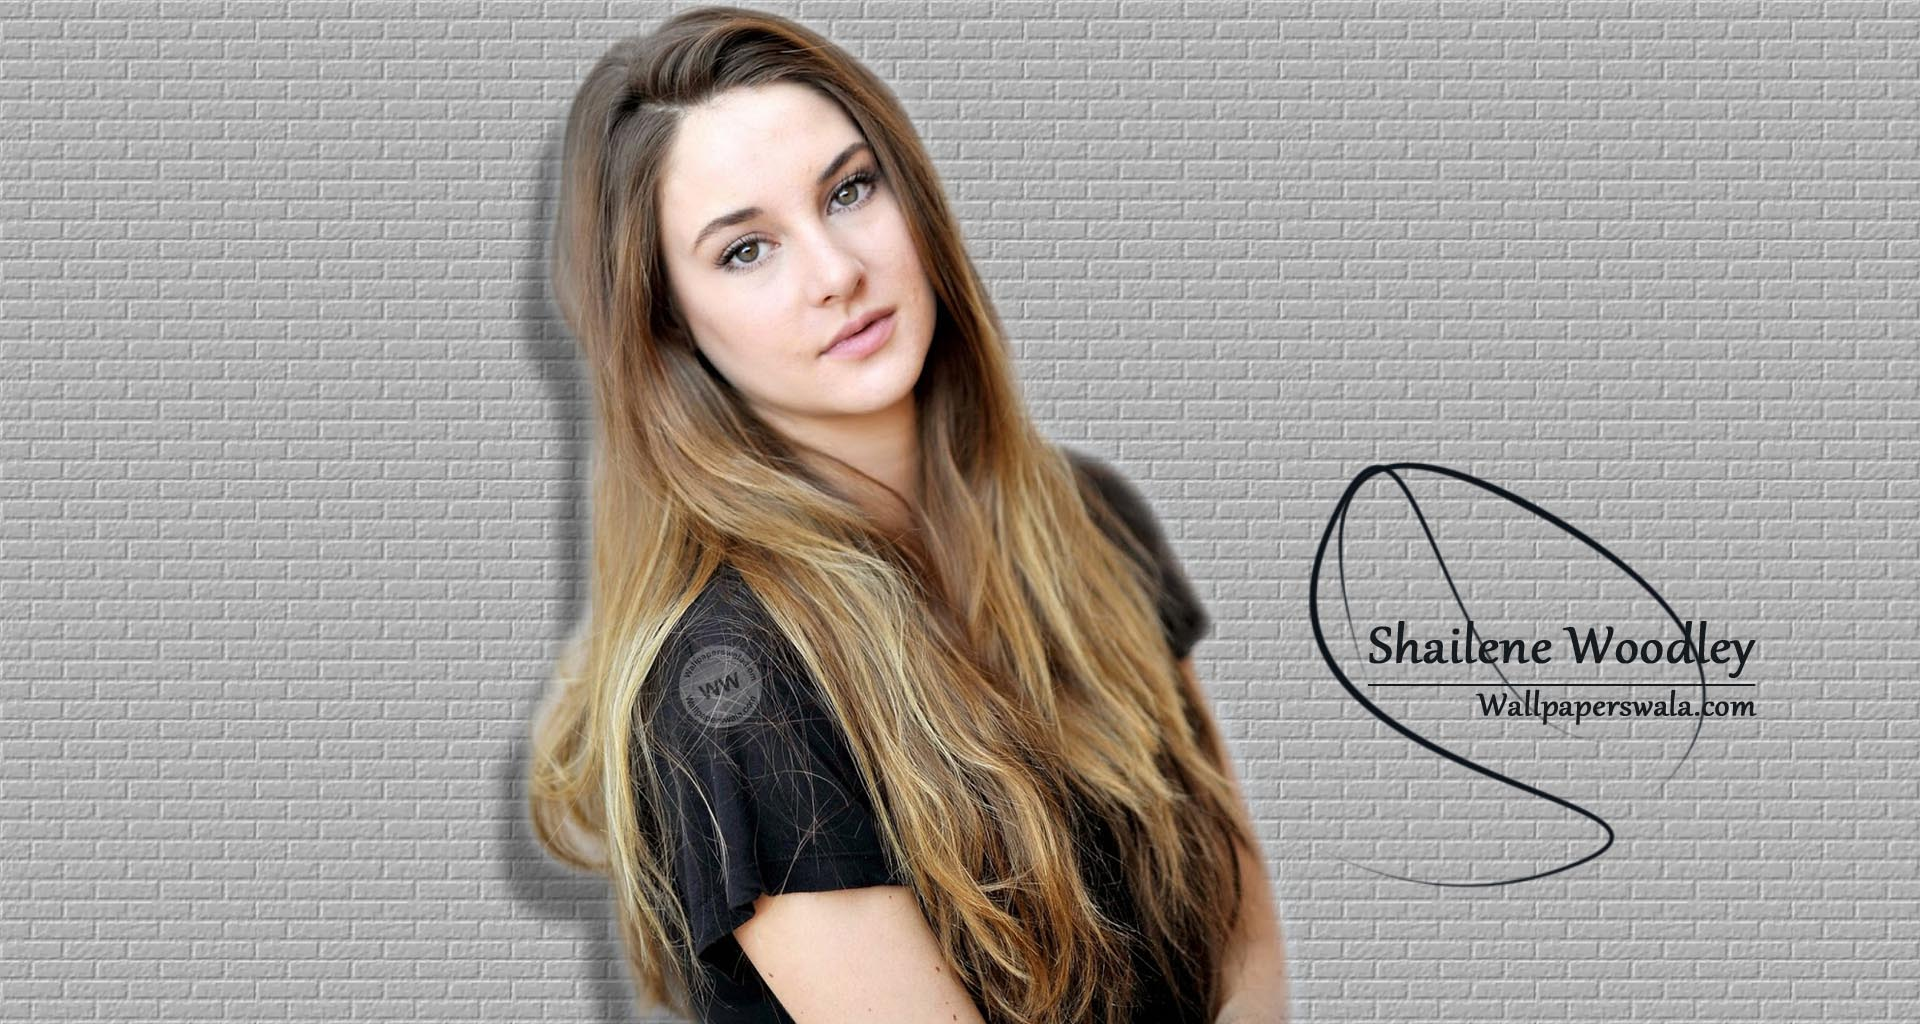 Shailene woodley wallpapers high quality download free shailene woodley pic thecheapjerseys Choice Image